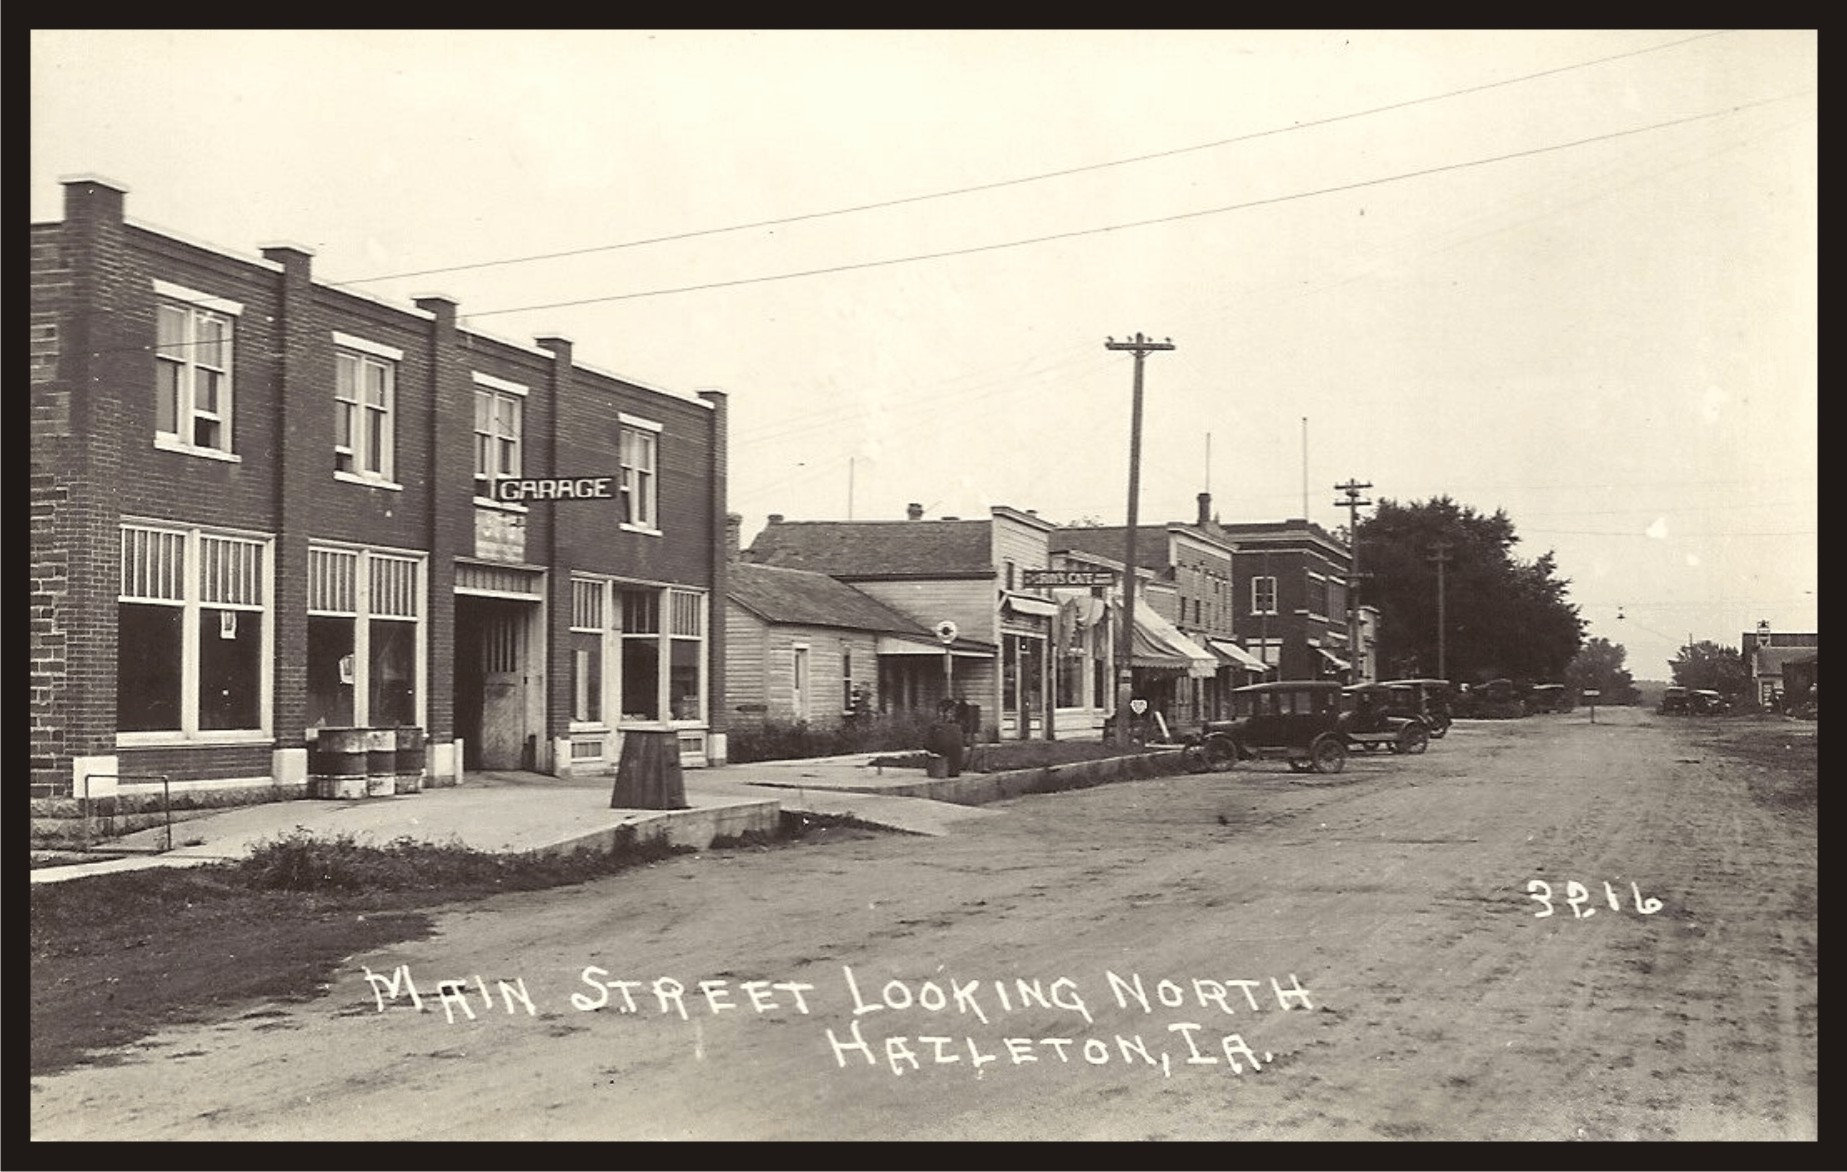 Old Main Street looking North - Hazleton, Iowa